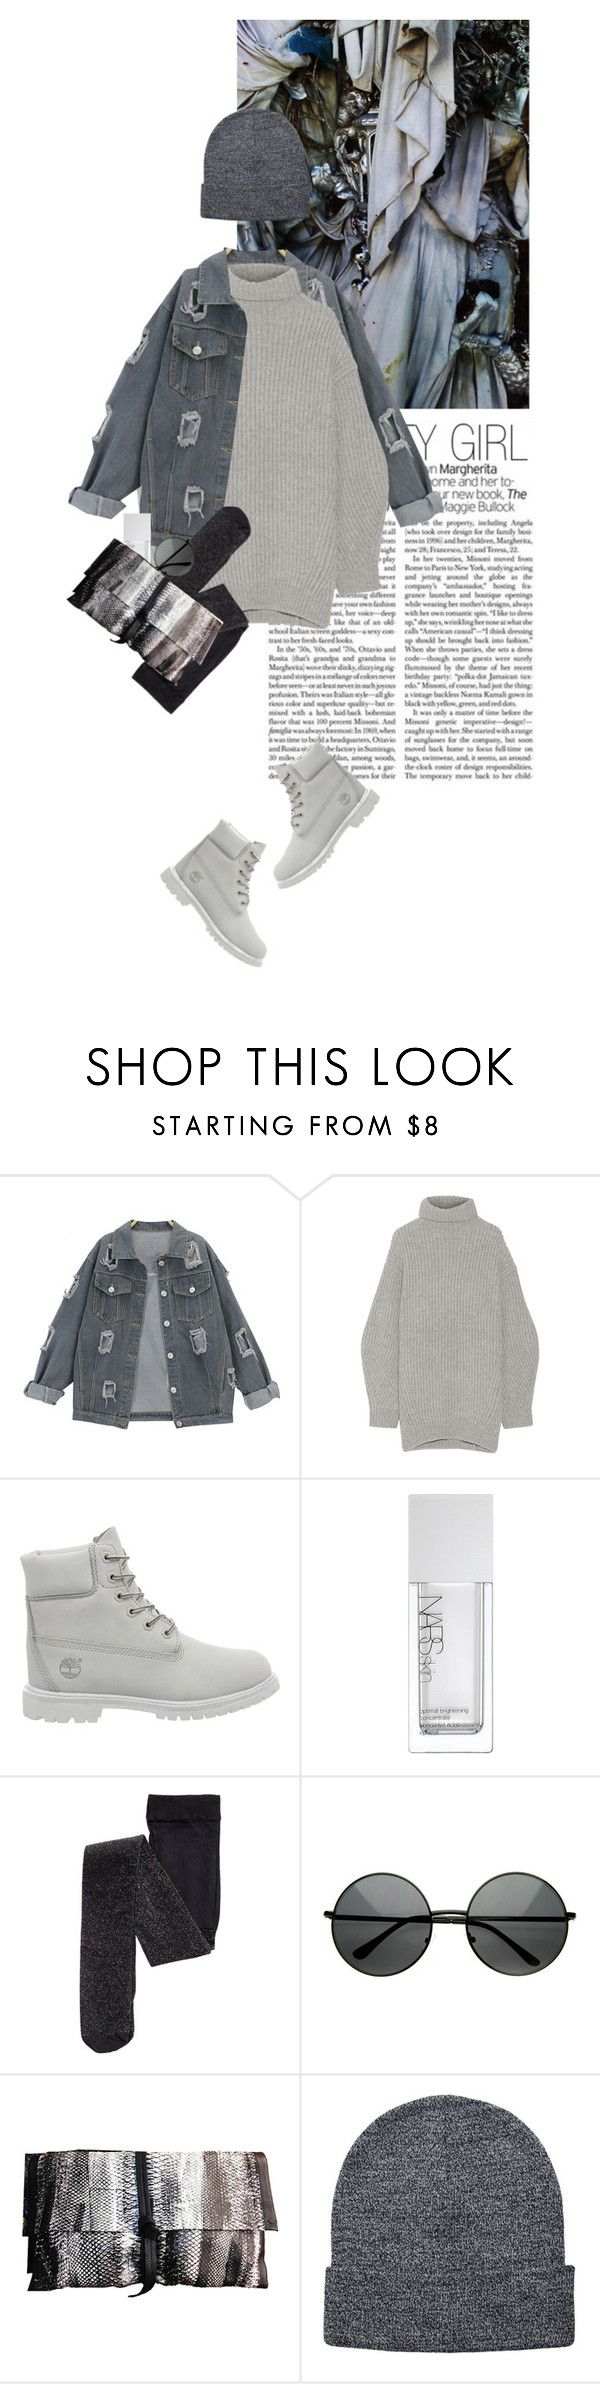 """""""denim in winter"""" by rosa-loves-skittles ❤ liked on Polyvore featuring Acne Studios, Timberland, NARS Cosmetics, Carlos Falchi, Pieces, denimjacket, timberland, combatboots, winterboots and jeansvest"""